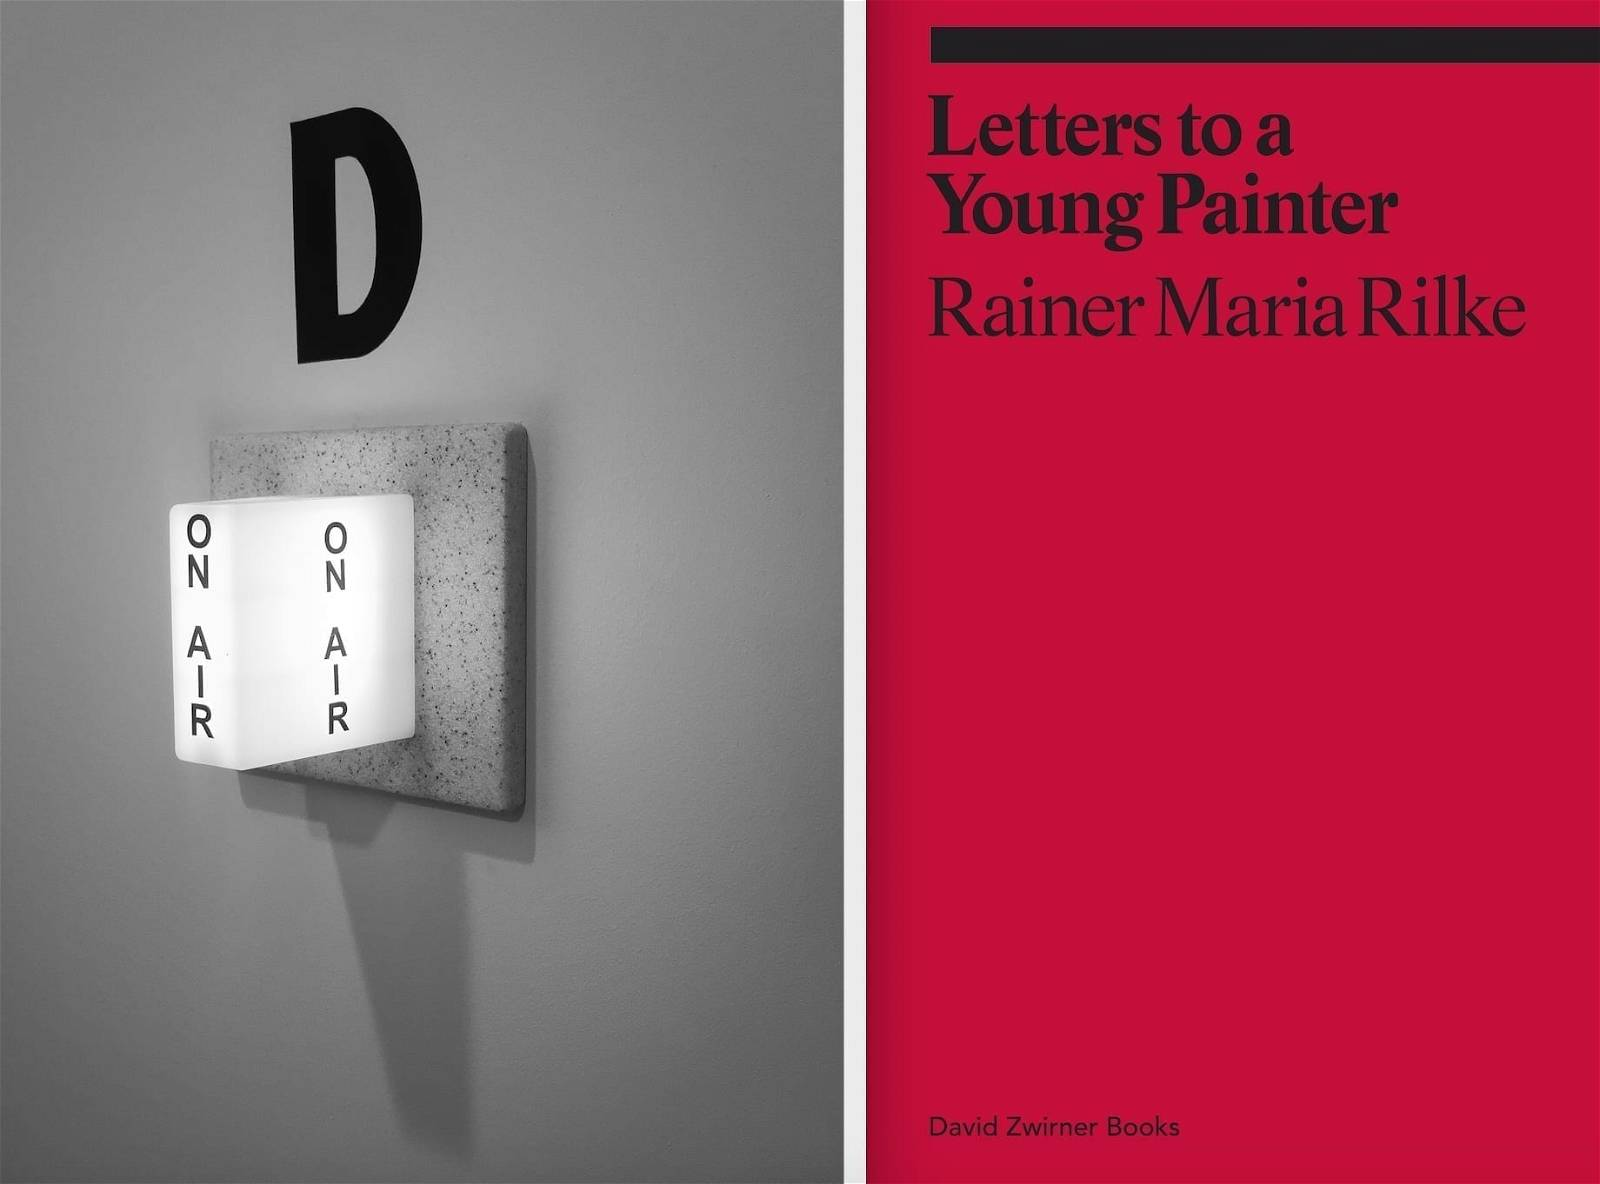 From Left to Right: Image of Podcast Recording Studio © Justyna Fedec. Cover of Letters to a Young Painter by Rainer Maria Rilke, published by David Zwirner Books.